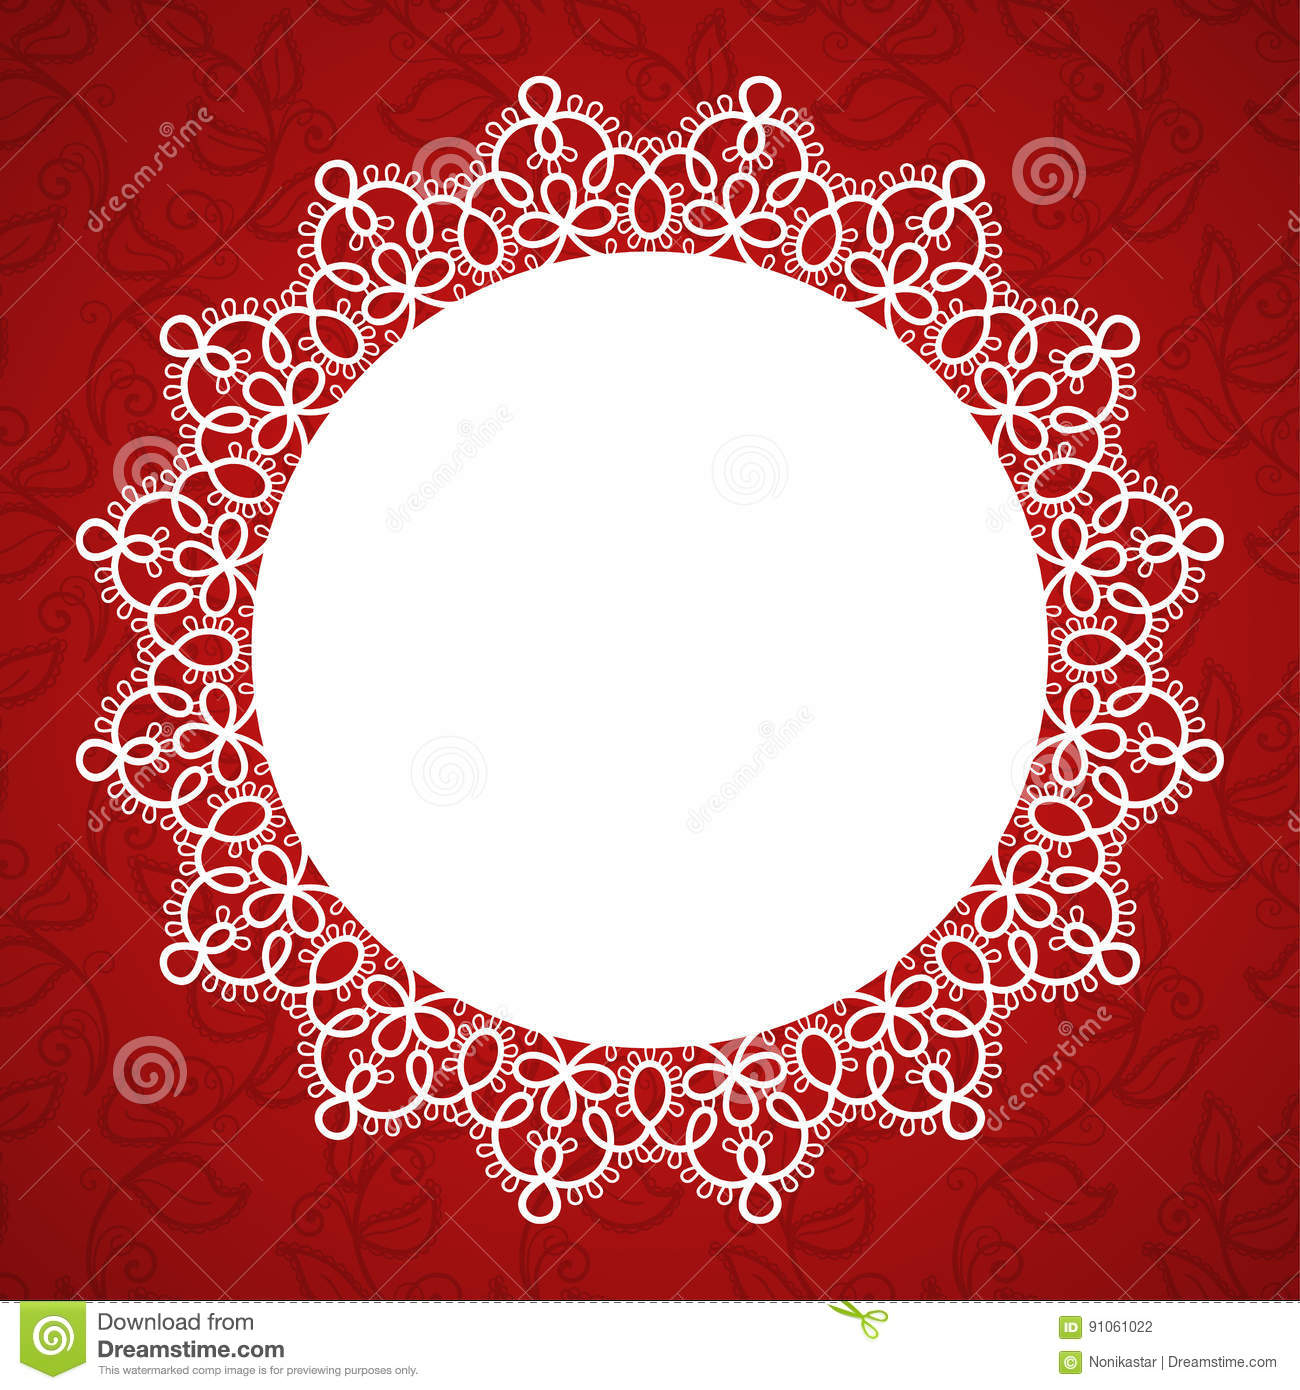 Lace round frame stock vector. Illustration of invitation - 91061022